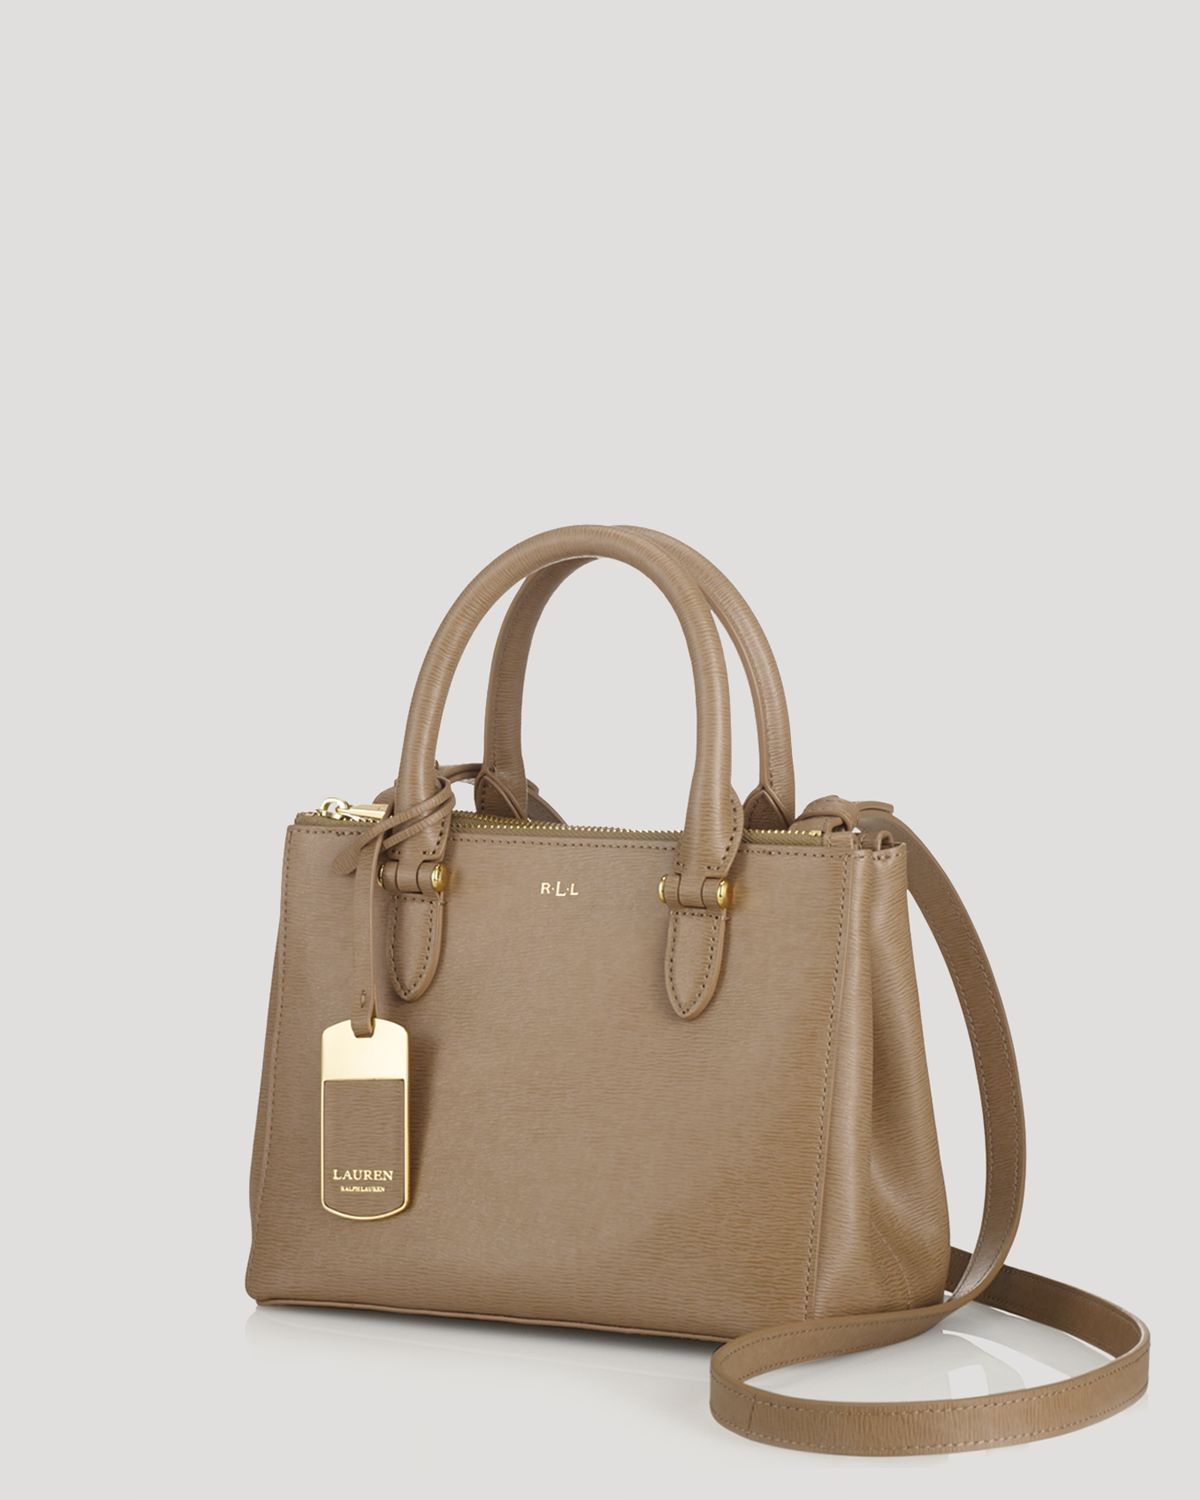 Lyst - Ralph Lauren Lauren Mini Bag Newbury Double Zip in Brown 1f116afccd97e